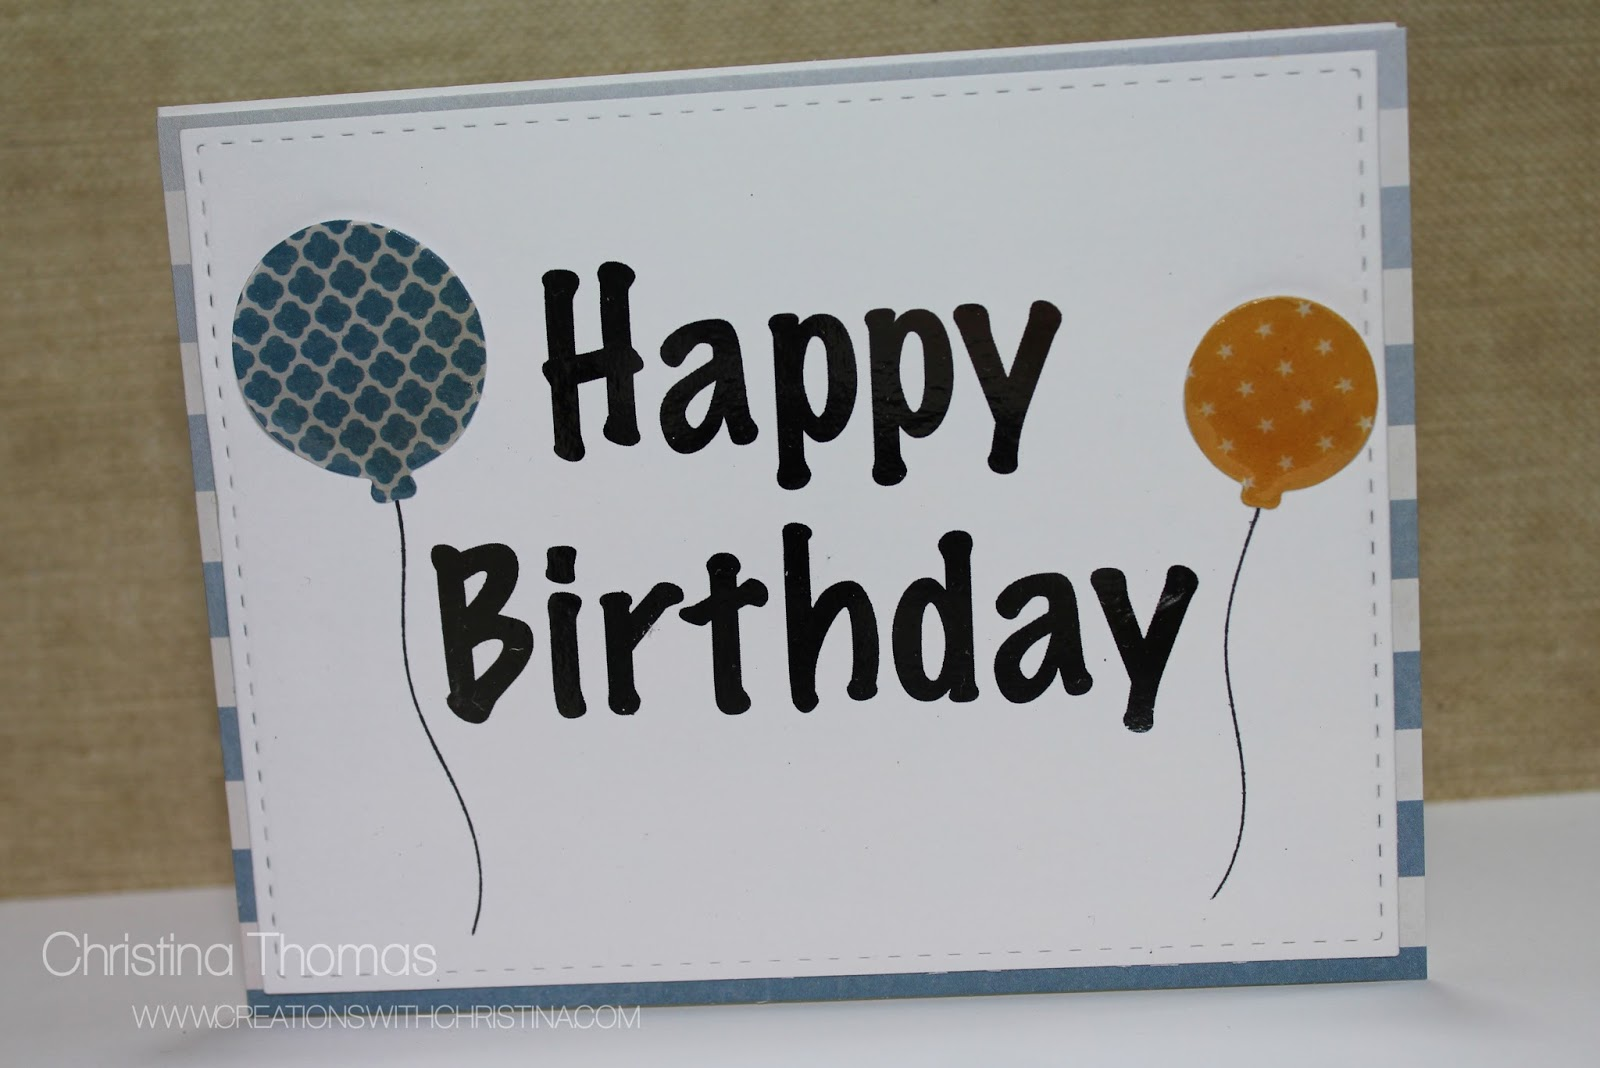 Foiled Birthday Card Creations With